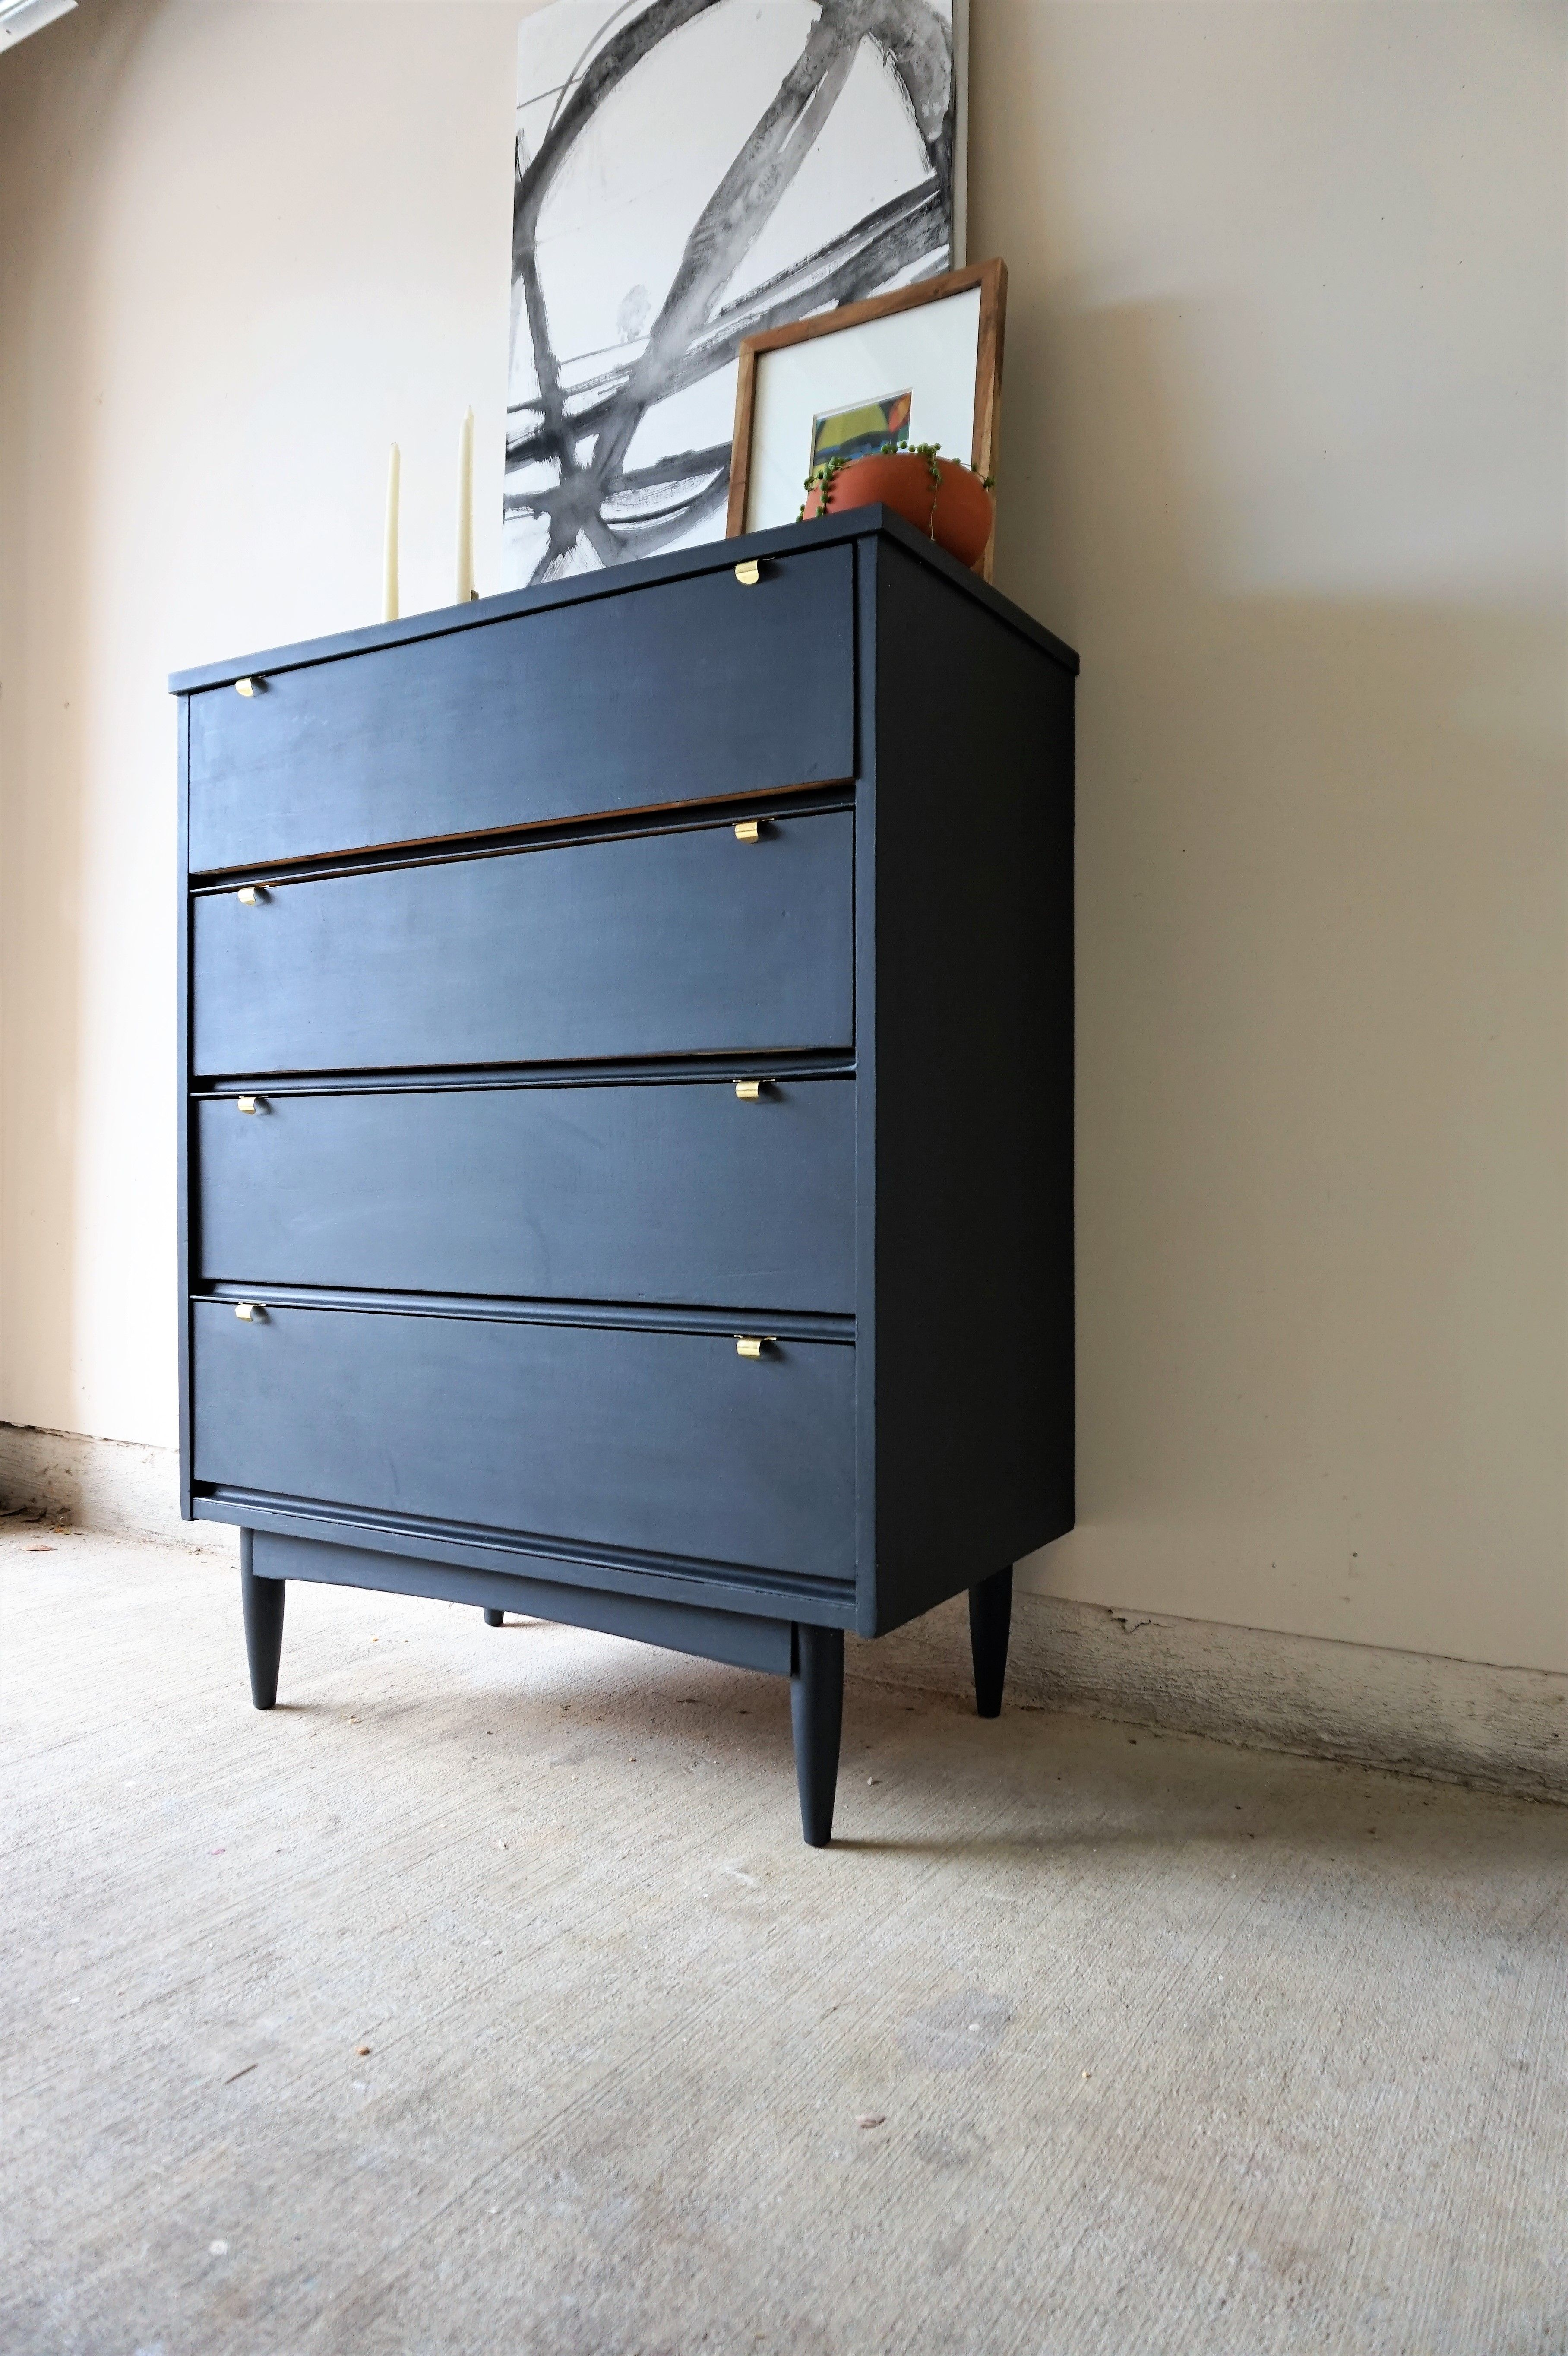 How To Refurbish Furniture: Damaged Dresser Gets A Makeover